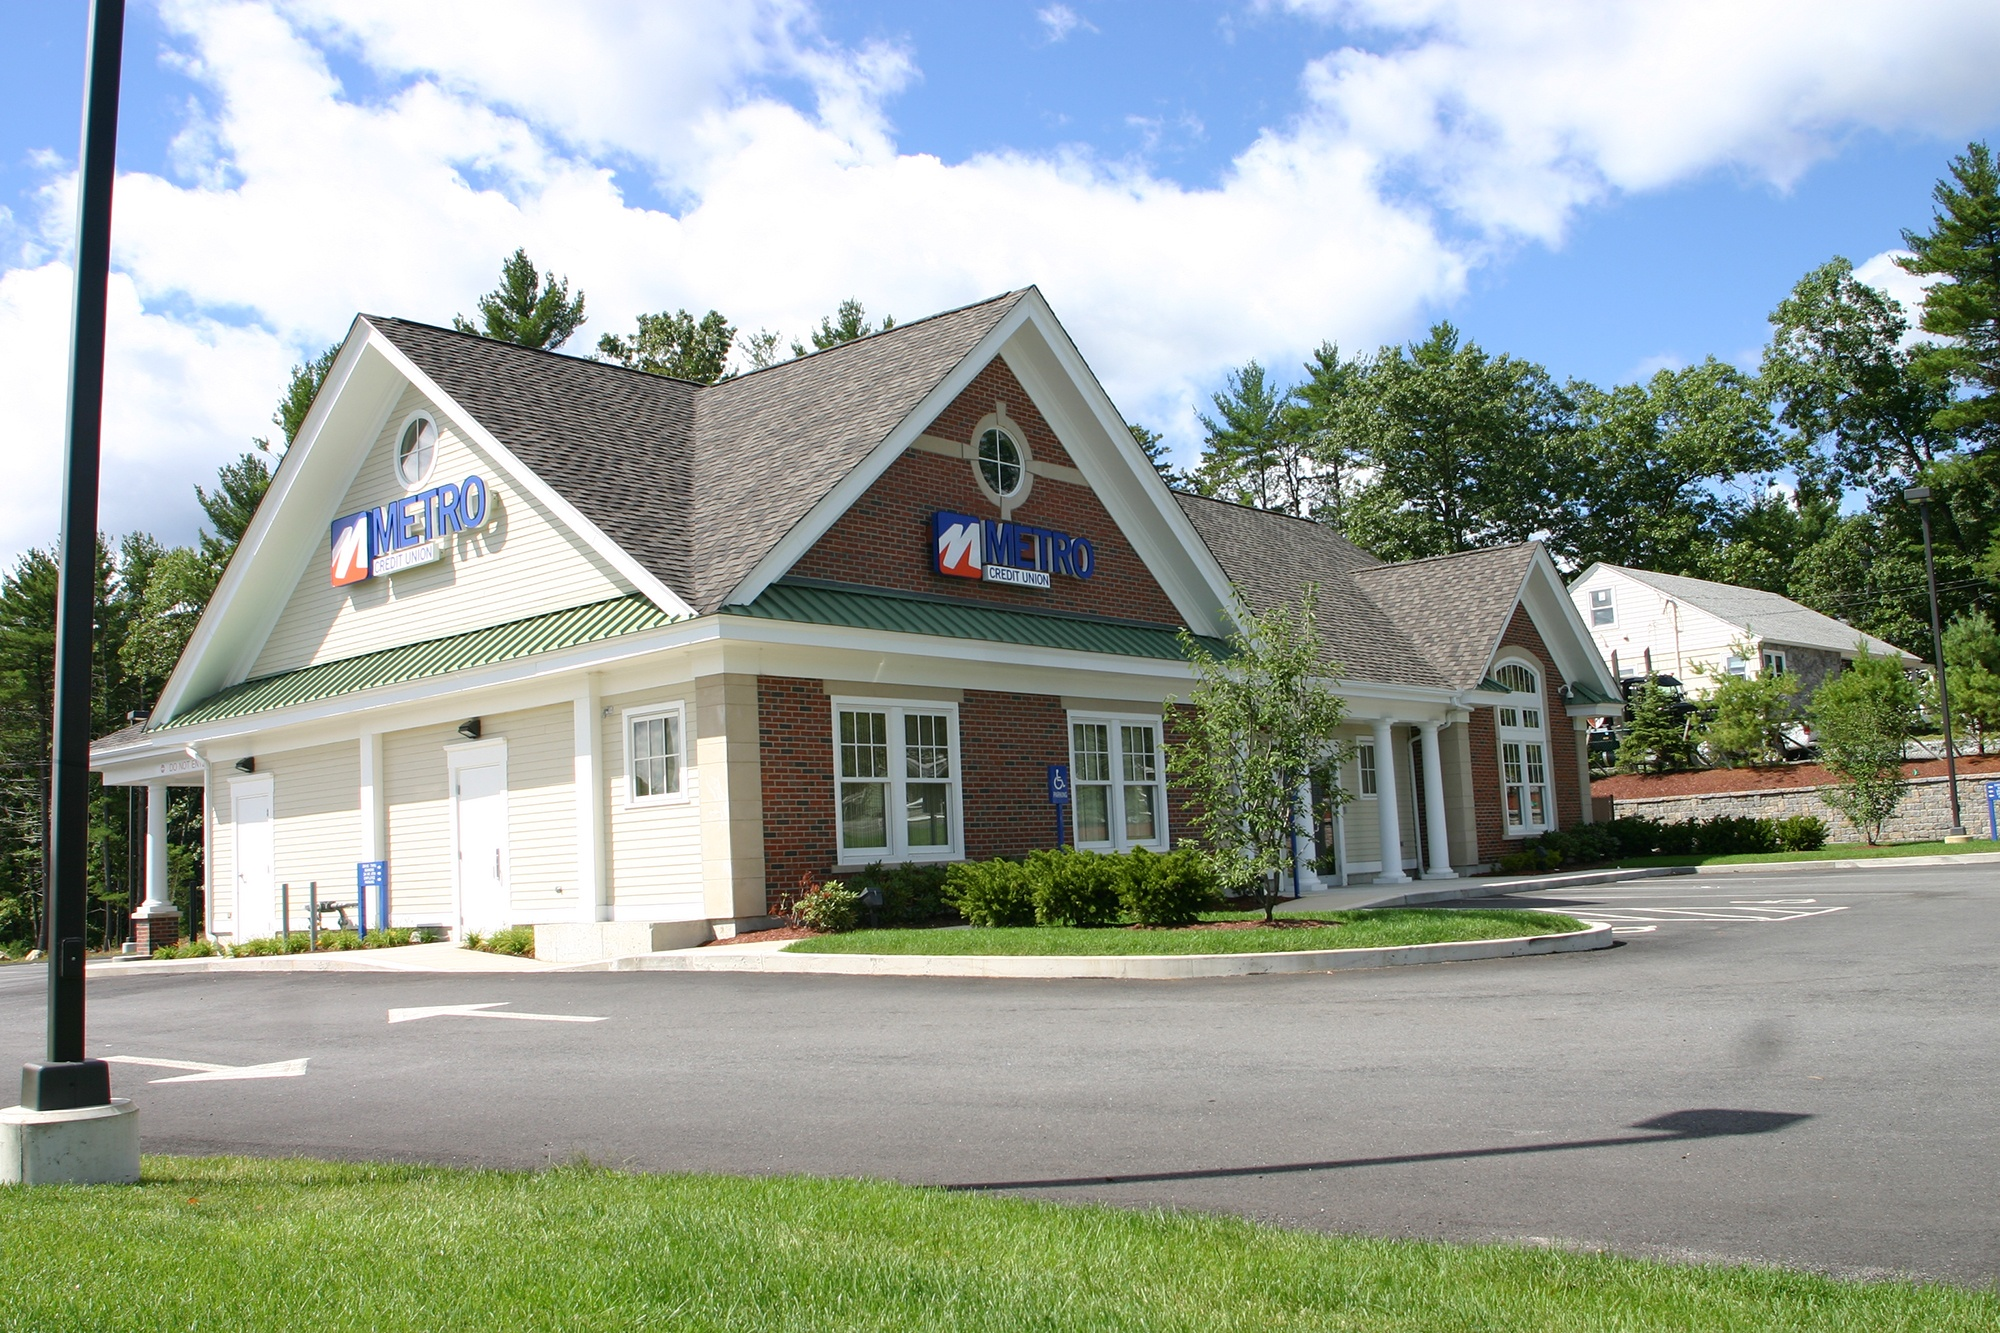 Metro Credit Union Tewksbury